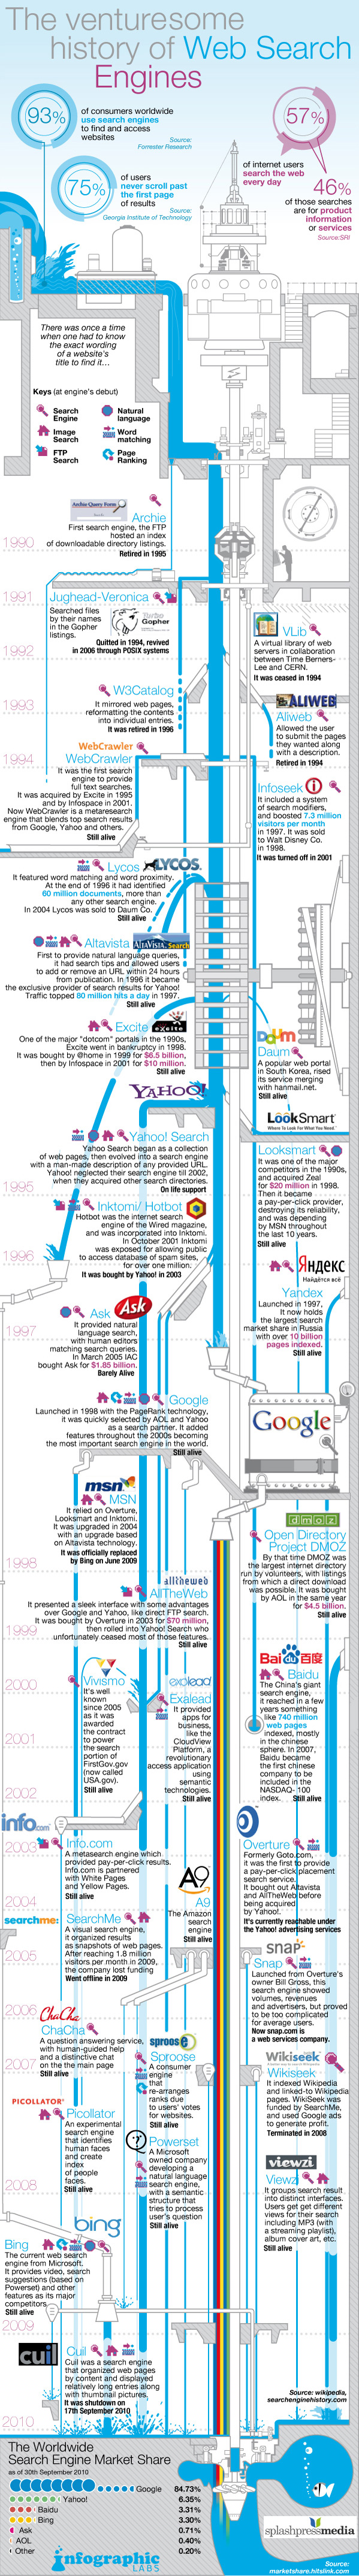 Search Engine History